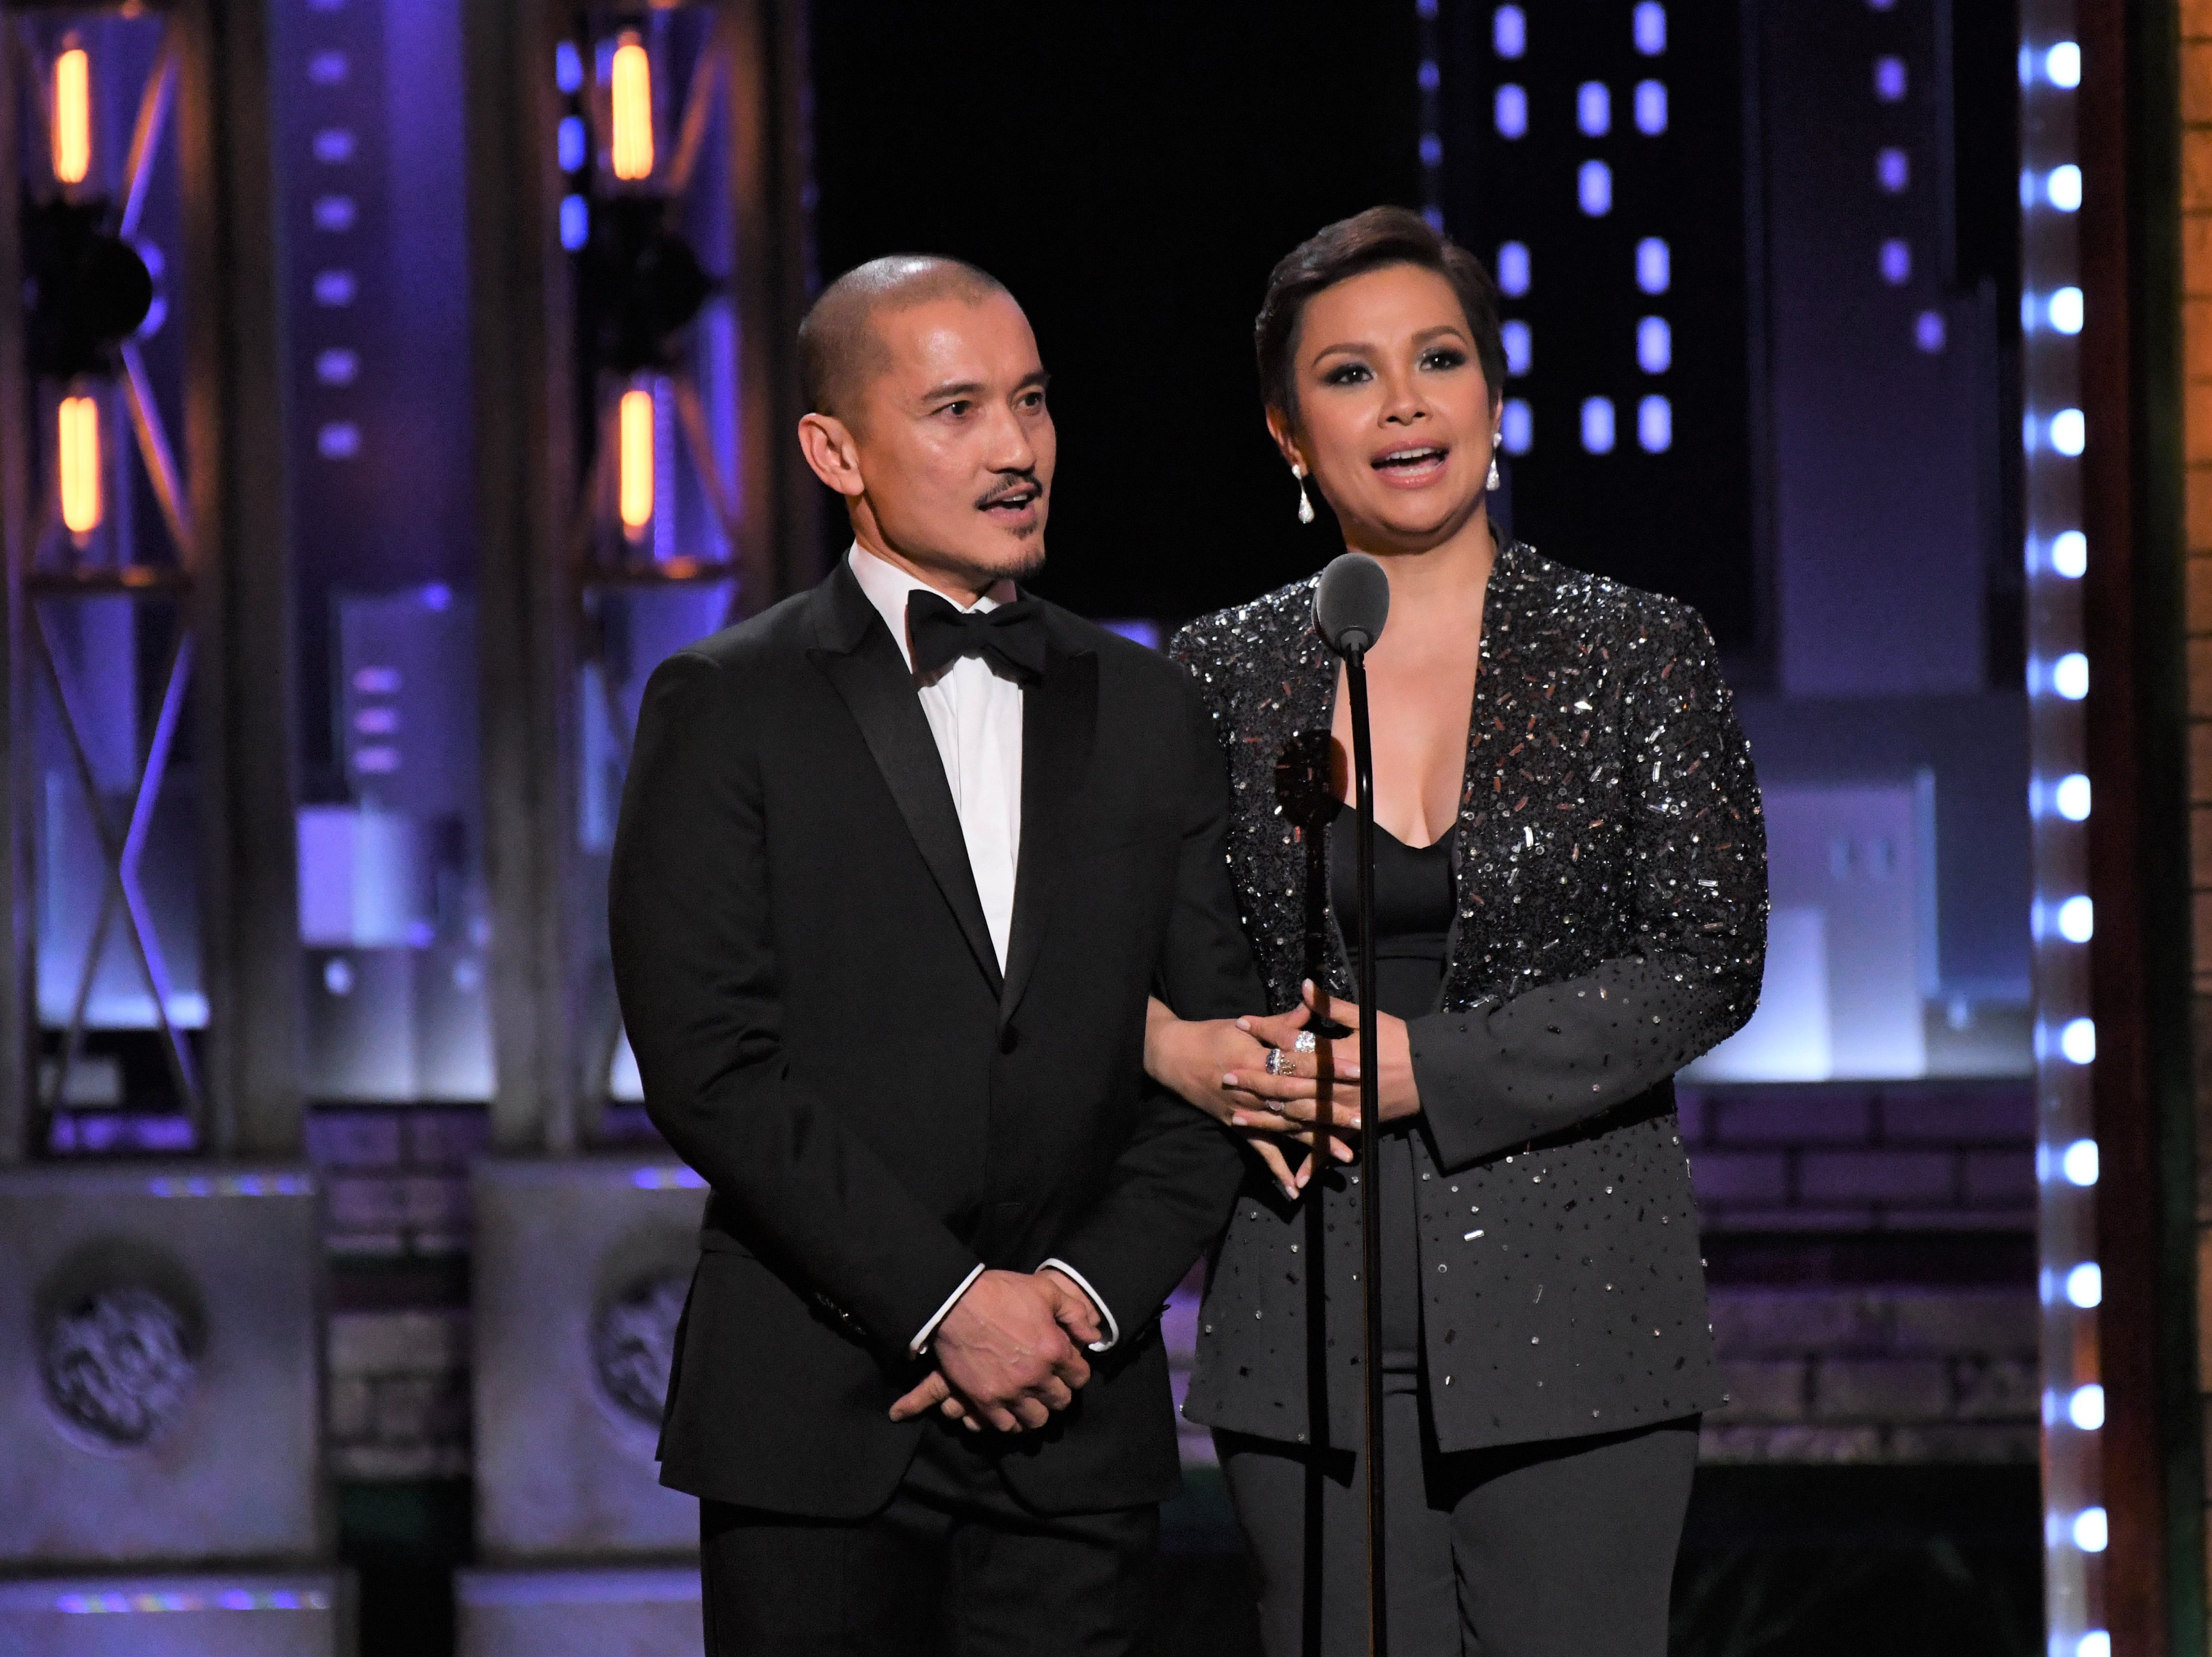 Jon Jon Briones and Lea Salonga introduce the performance by the cast of Miss Saigon at the Tony Awards in 2017.